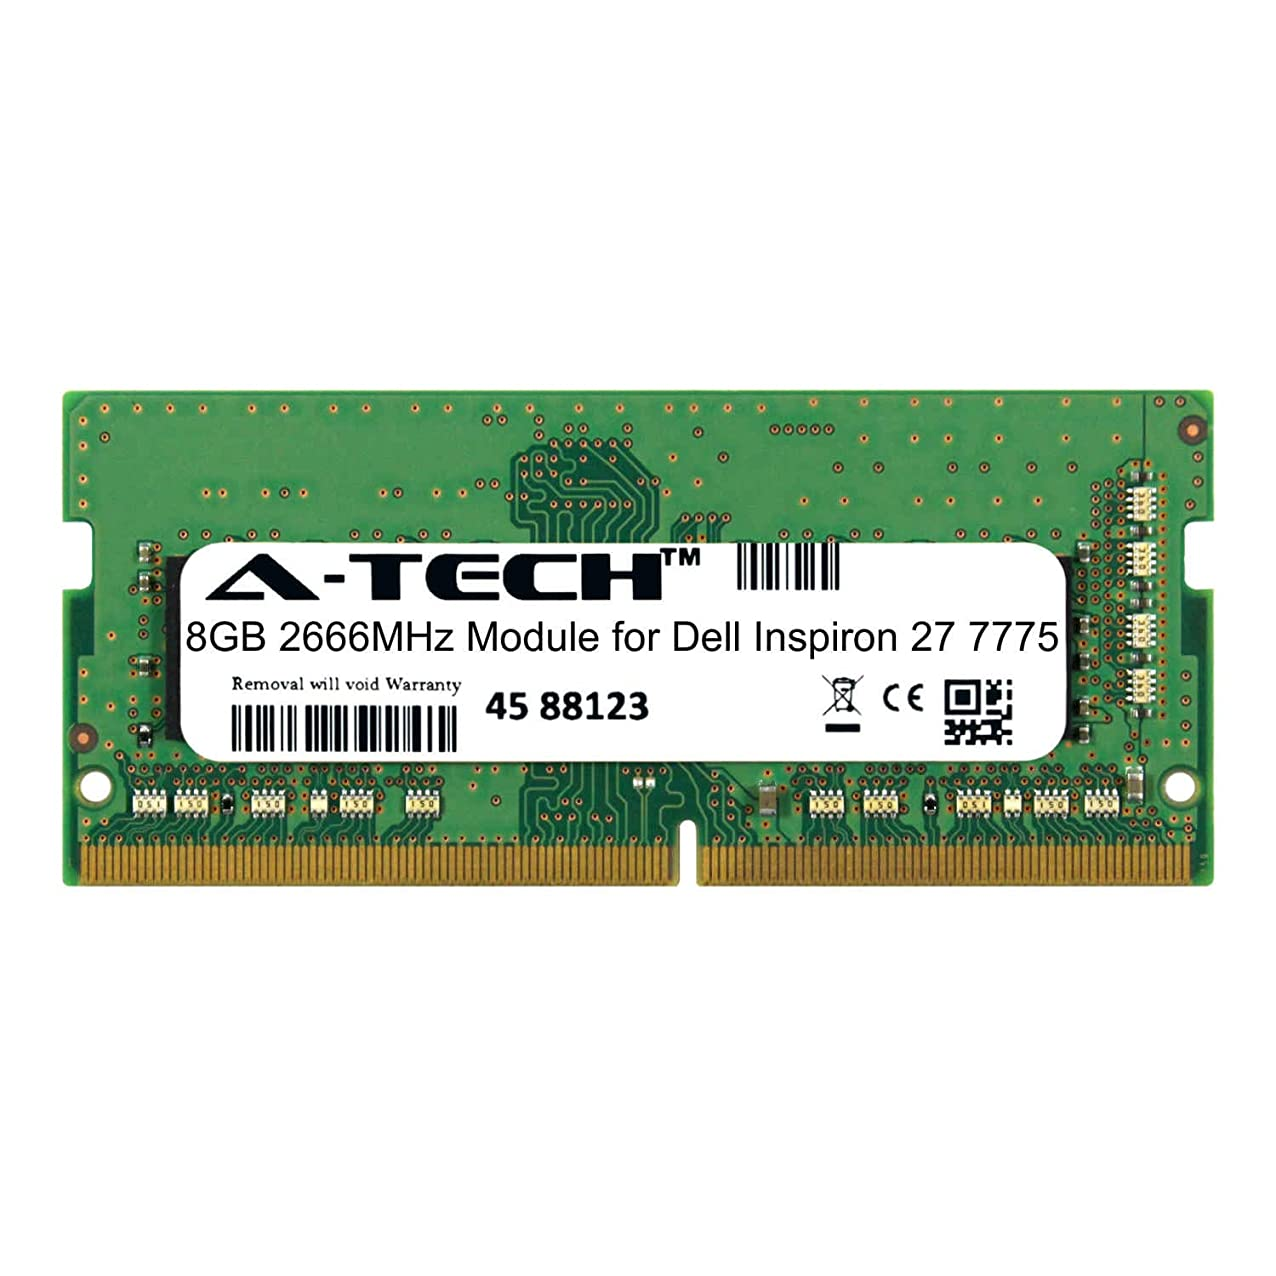 A-Tech 8GB Module for Dell Inspiron 27 7775 Laptop & Notebook Compatible DDR4 2666Mhz Memory Ram (ATMS277786A25978X1) mmadyldgroknh355